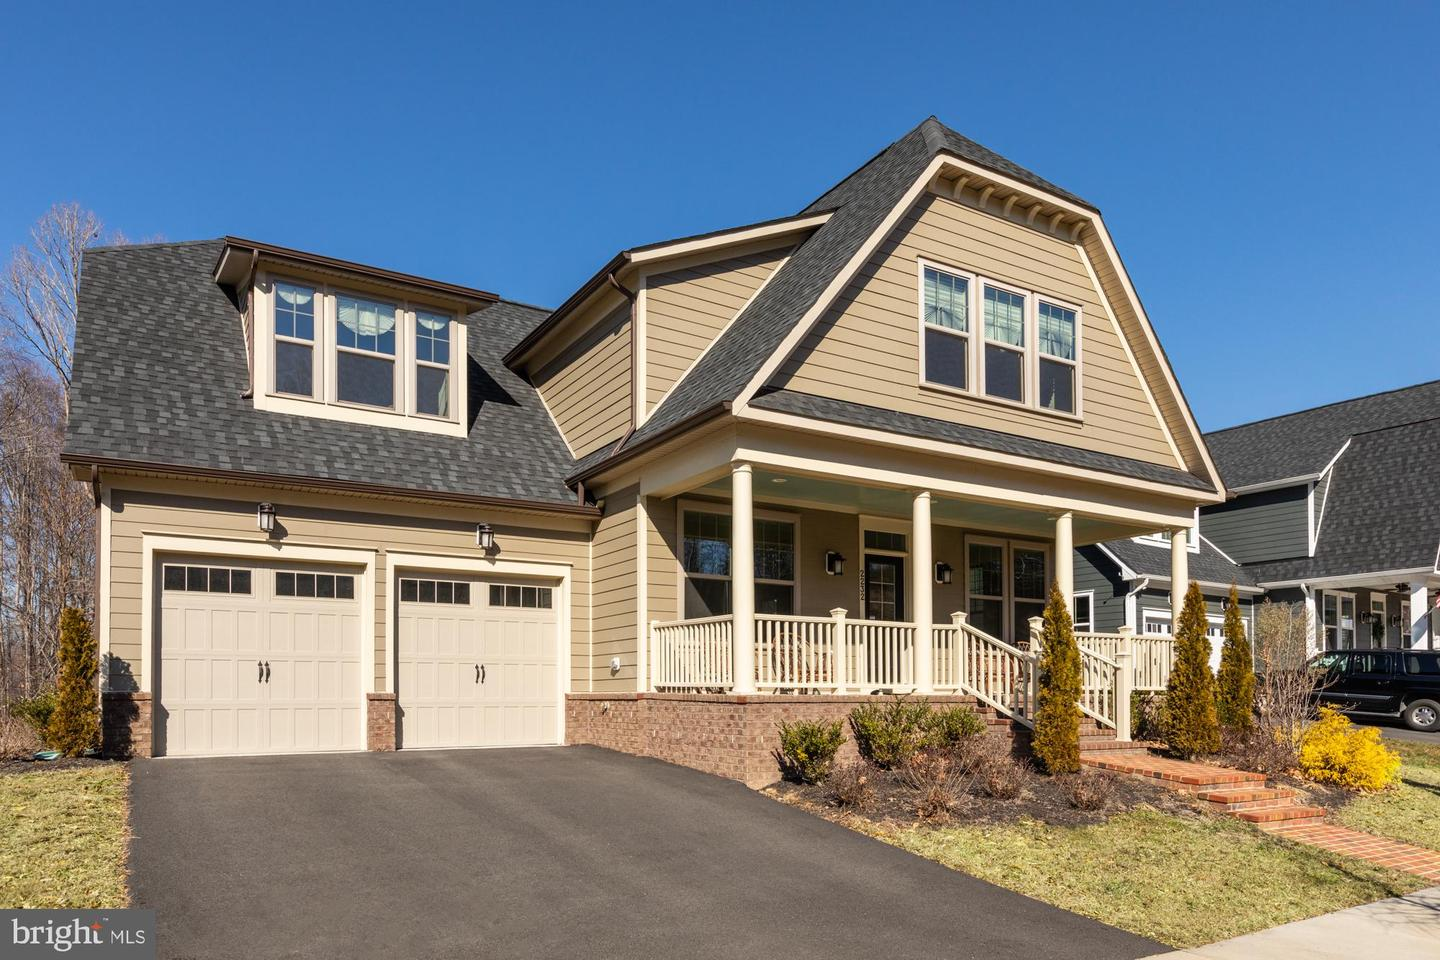 Additional photo for property listing at 2232 Potomac River Blvd Dumfries, Virginia 22026 United States